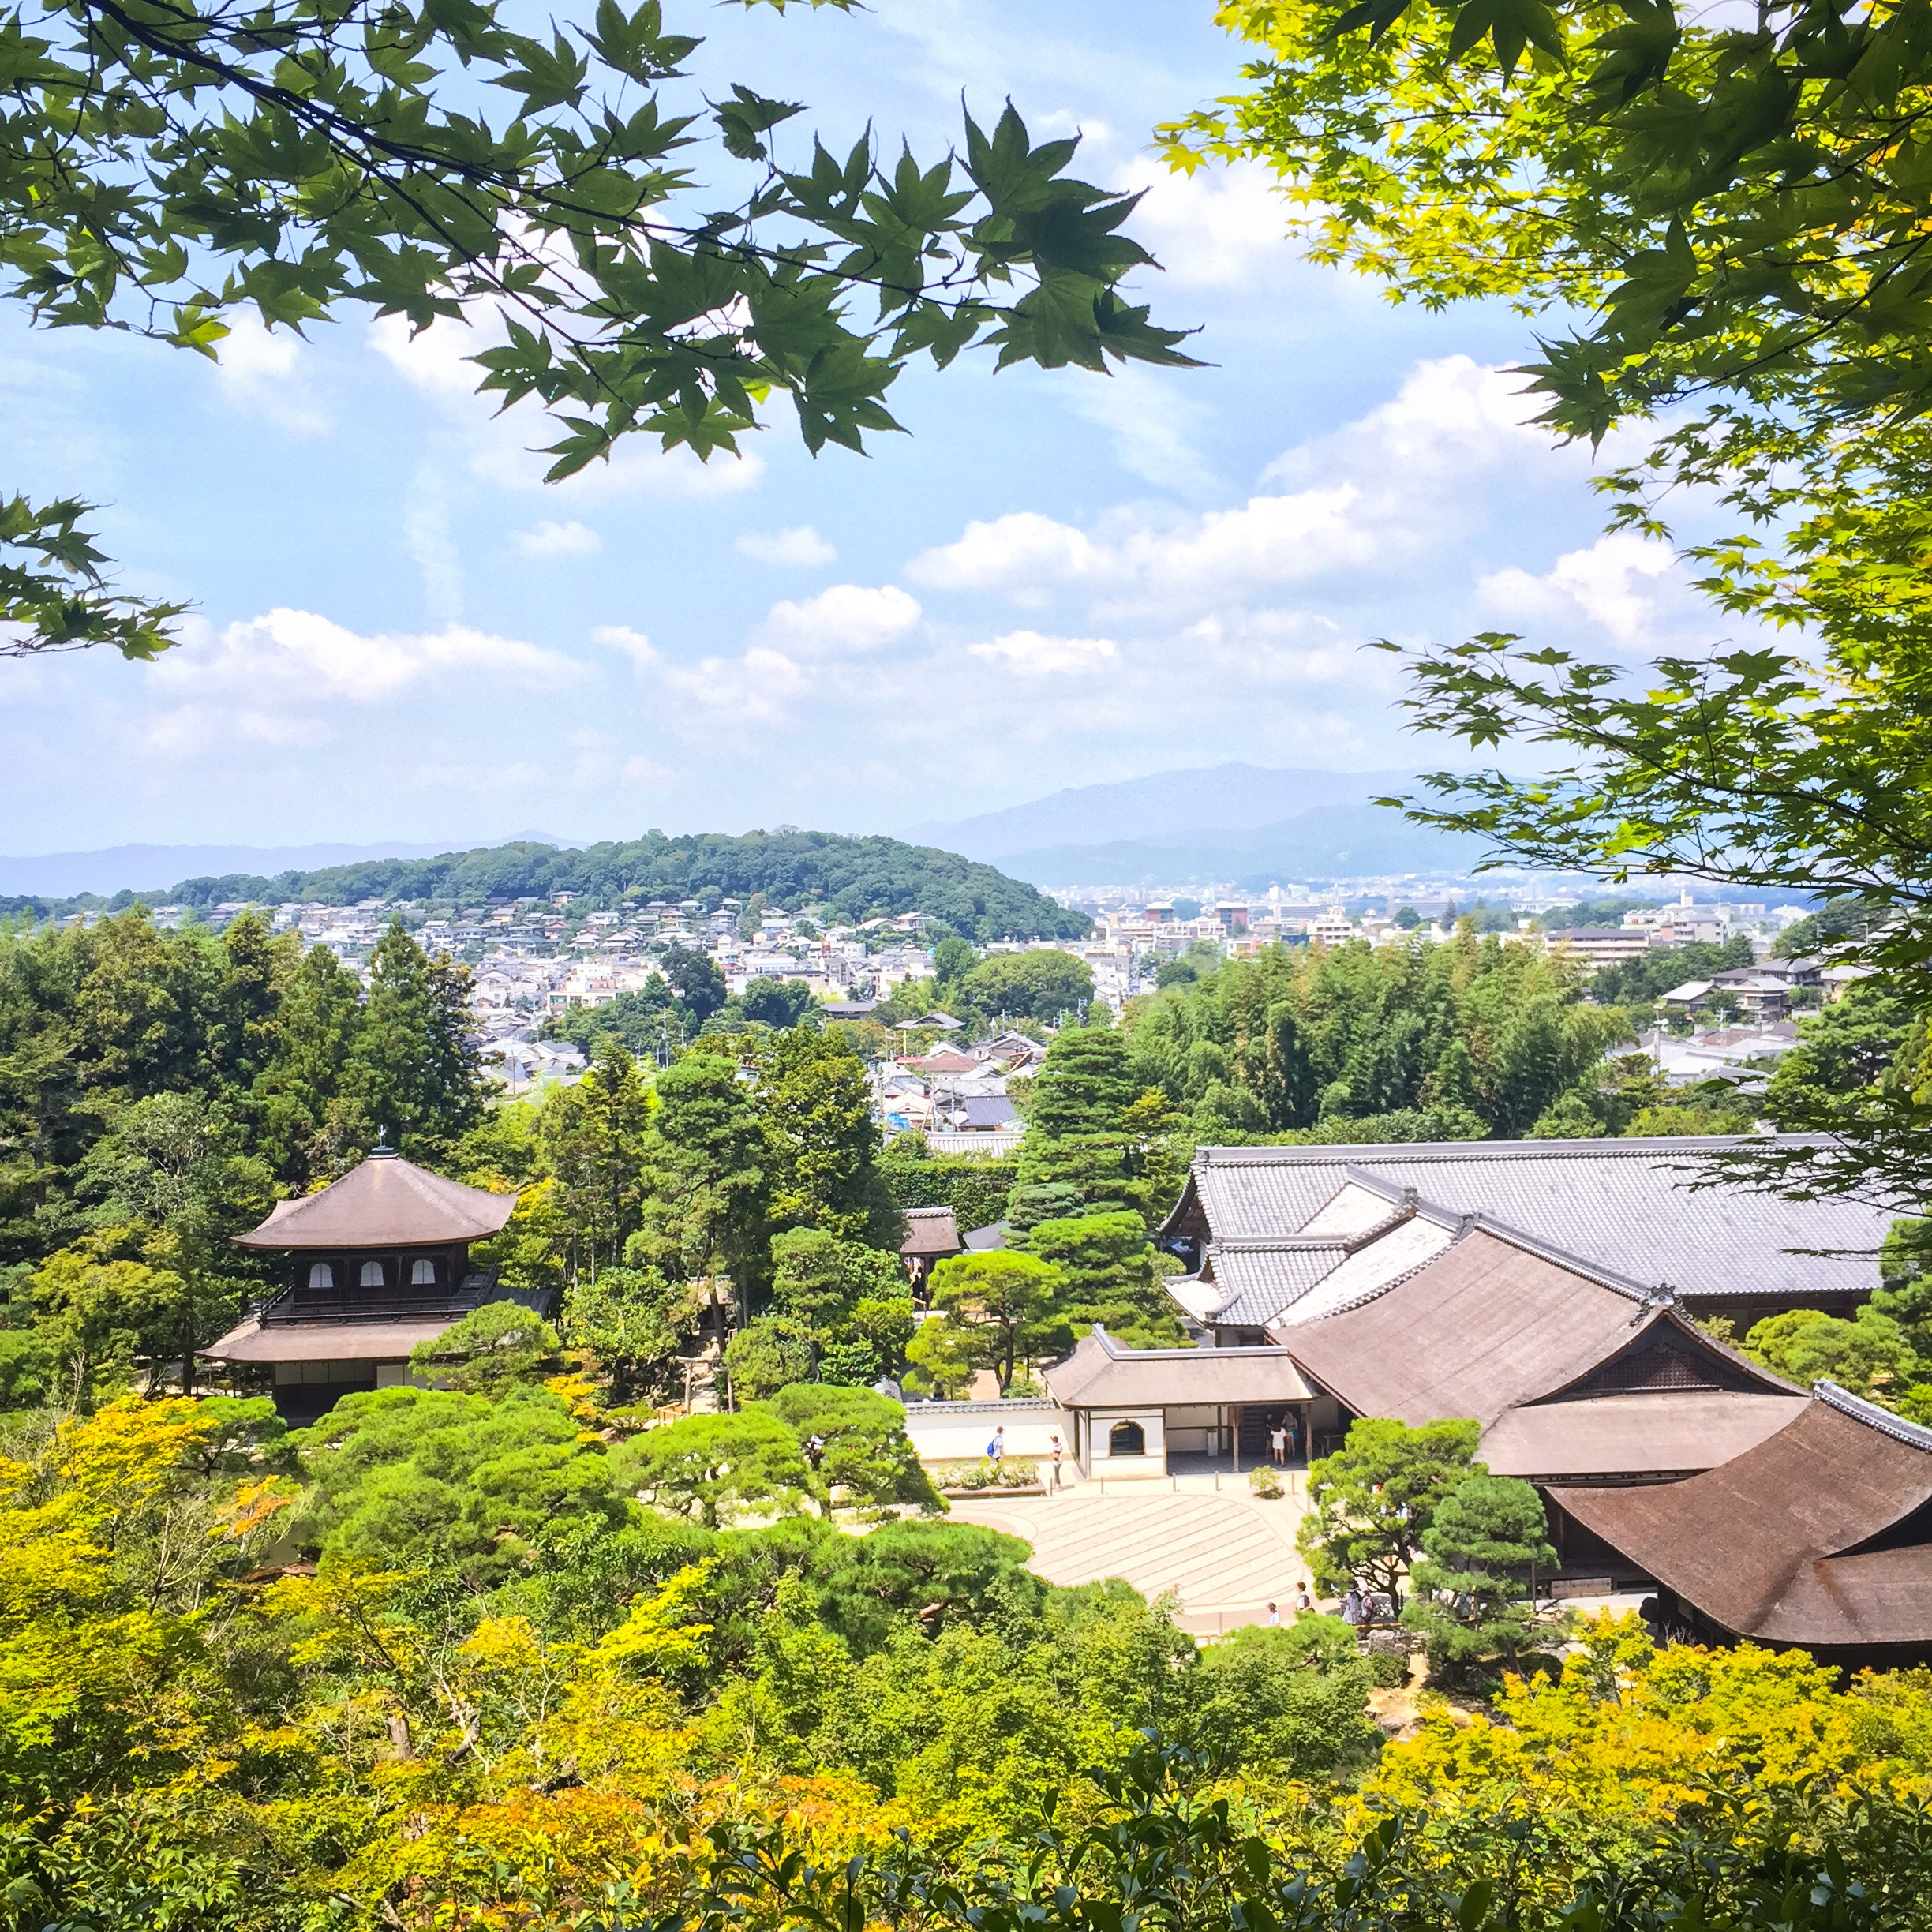 Kiyomizu-dera - 清水寺 , Views of Kyoto